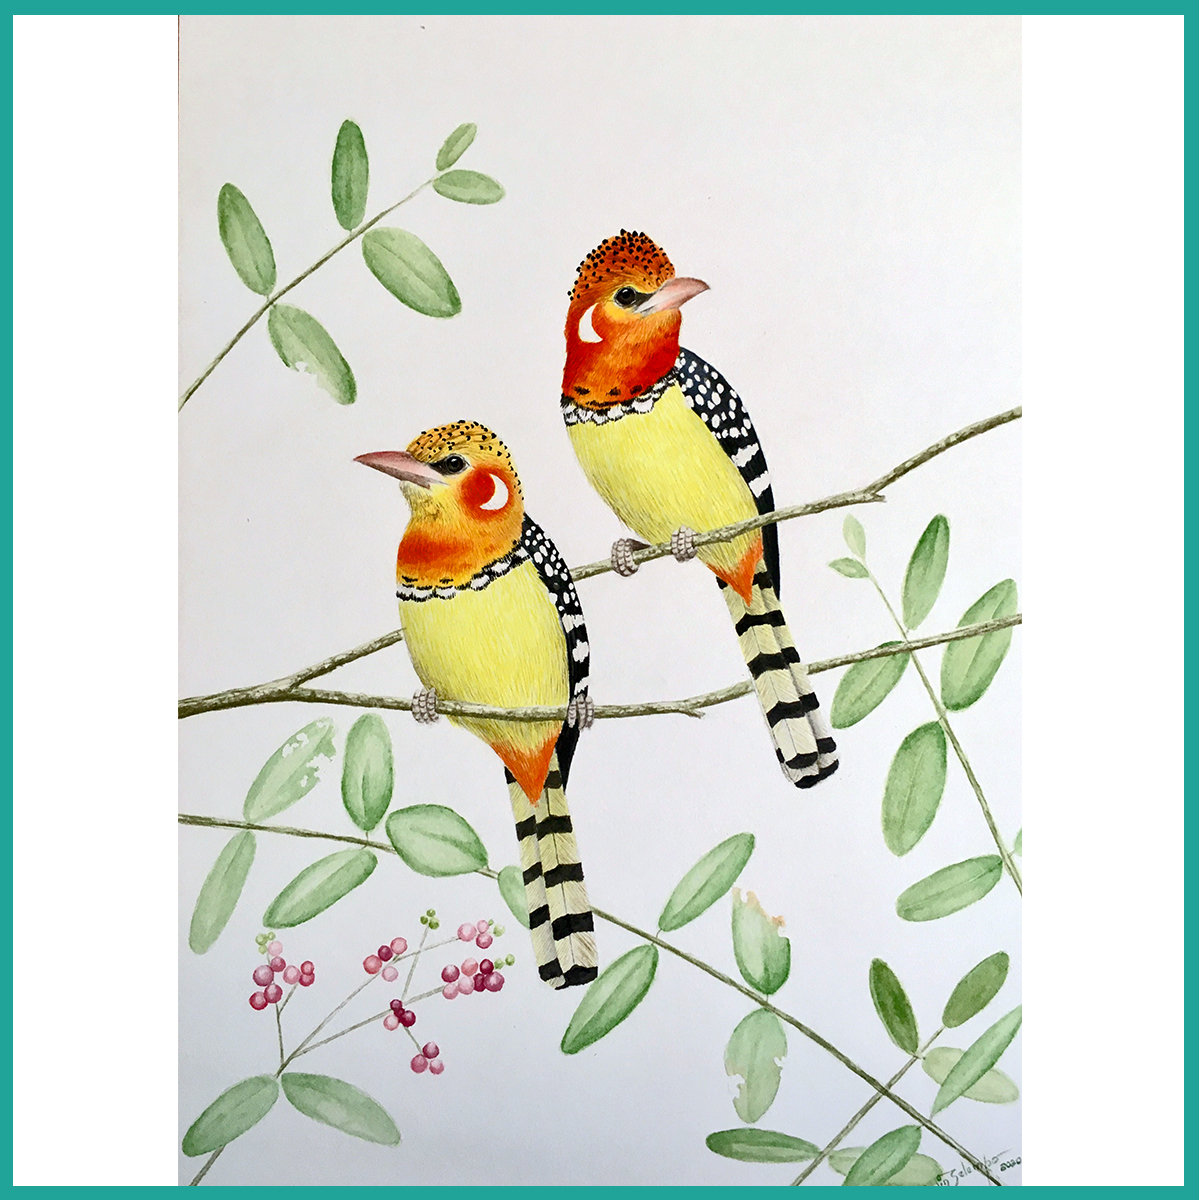 Red and yellow barbet 9.75x13.5 US$ 265